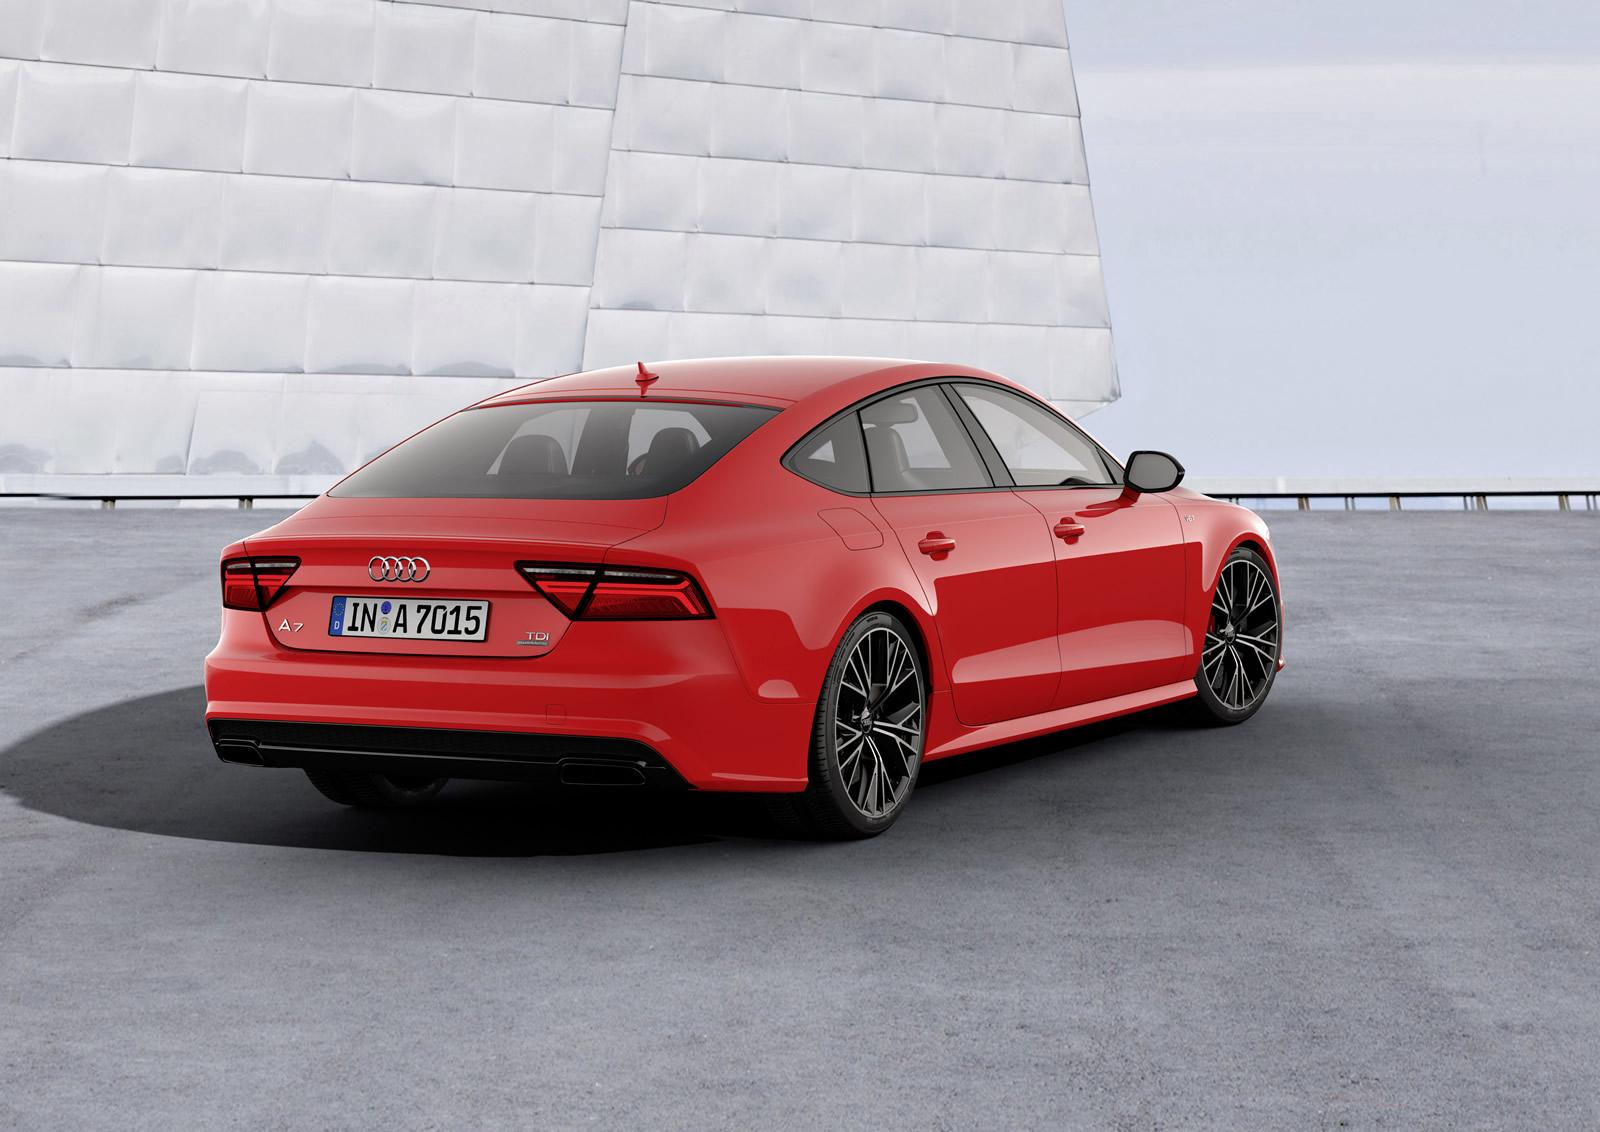 Used Cars for Sale in Miami Florida  The Collection Audi